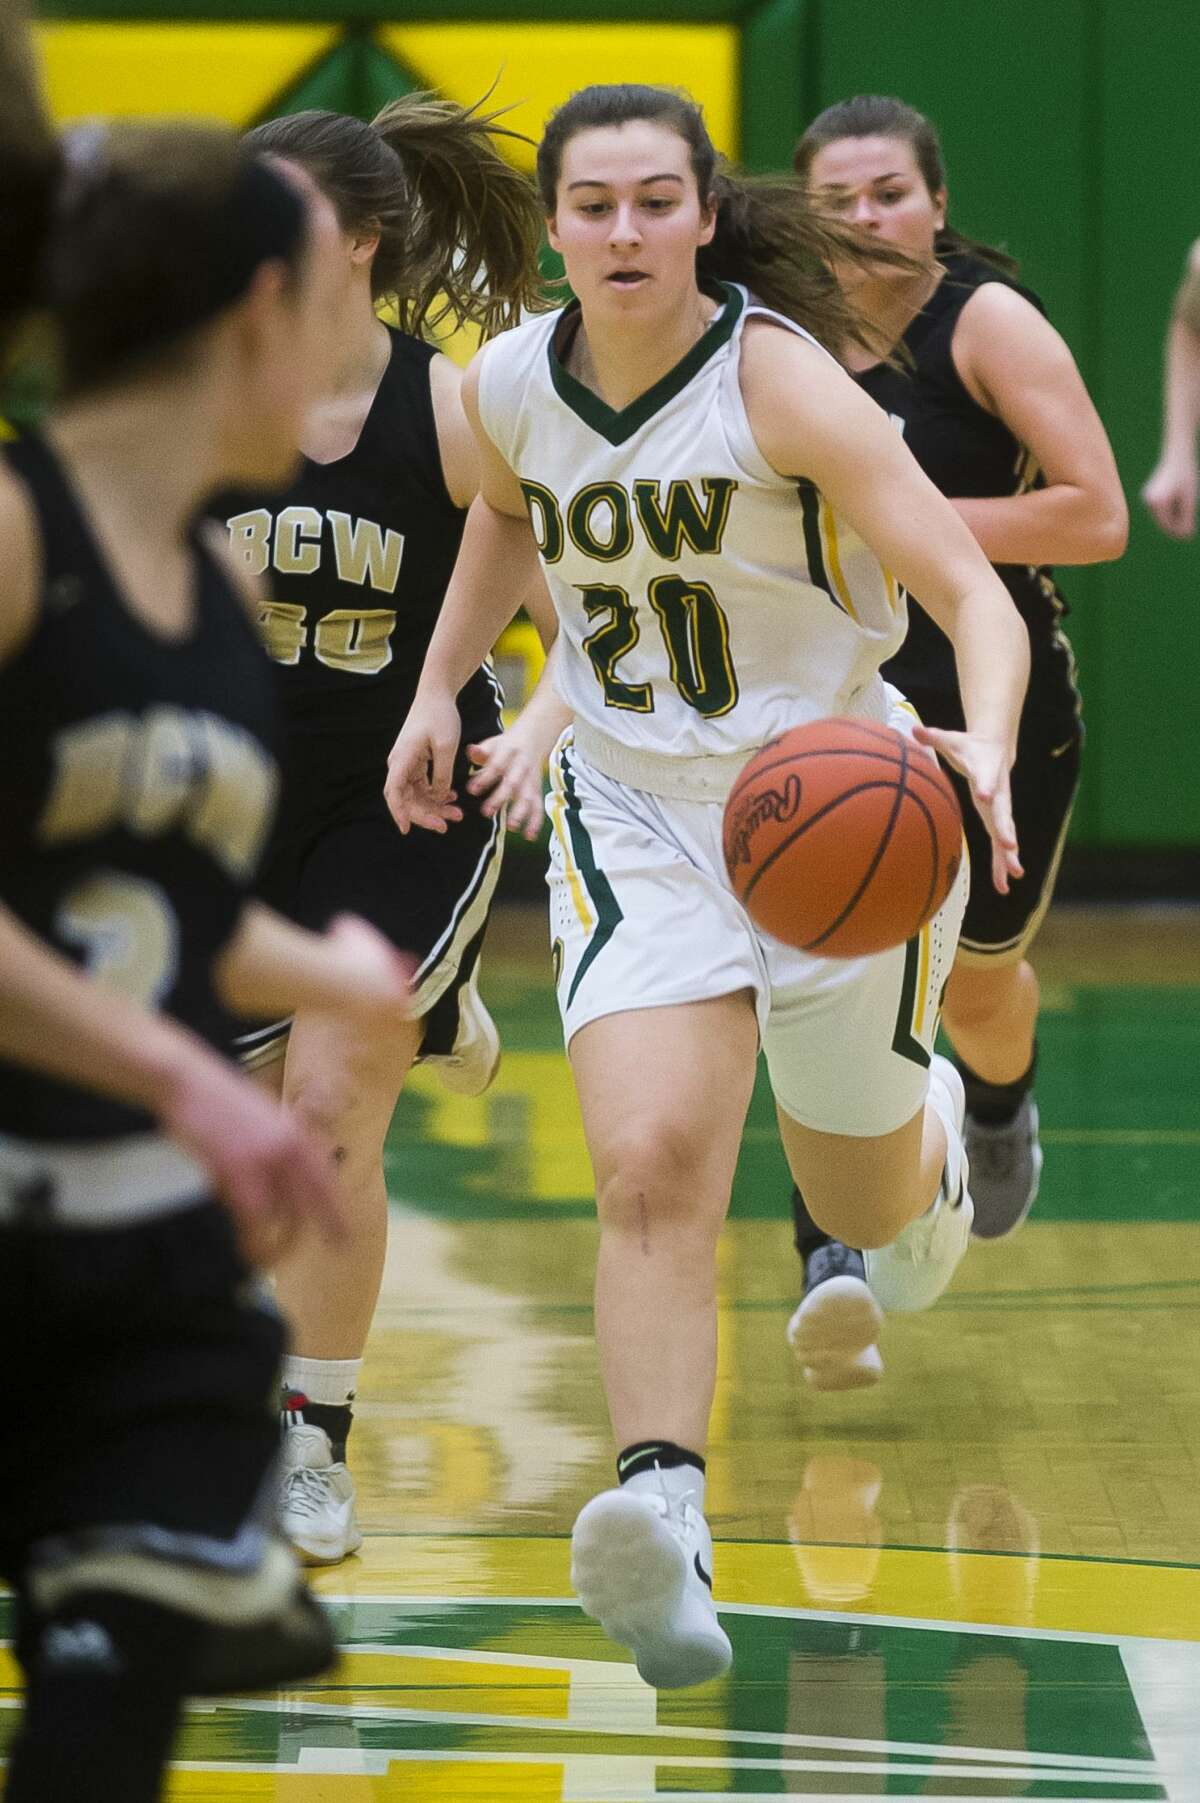 Dow junior Maizie Taylor dribbles down the court during the Chargers' game against Bay City Western on Tuesday, Feb. 13, 2018 at H. H. Dow High School. (Katy Kildee/kkildee@mdn.net)